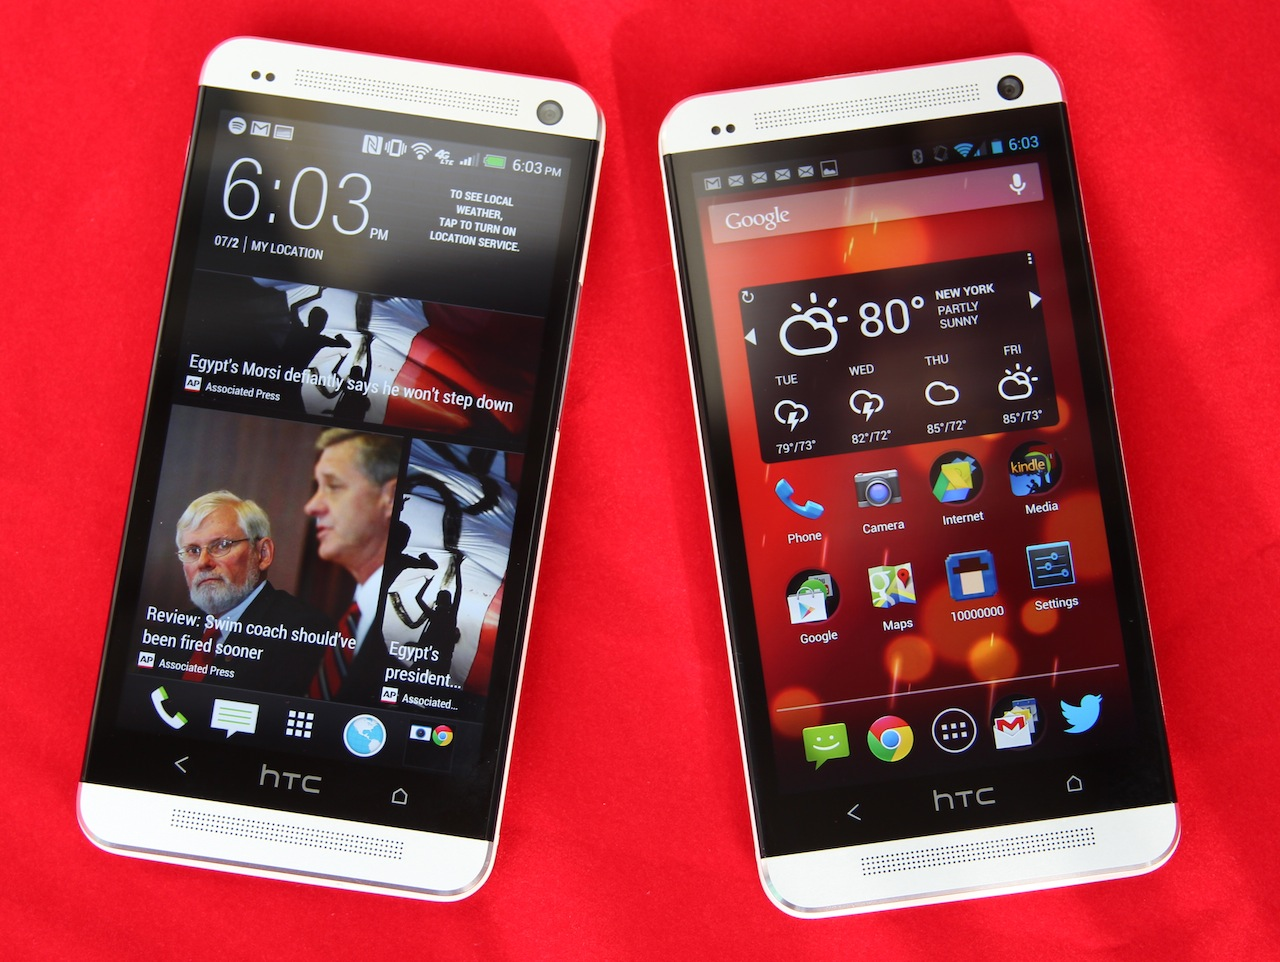 The regular version of the HTC One (left) next to the Google Play edition (right).